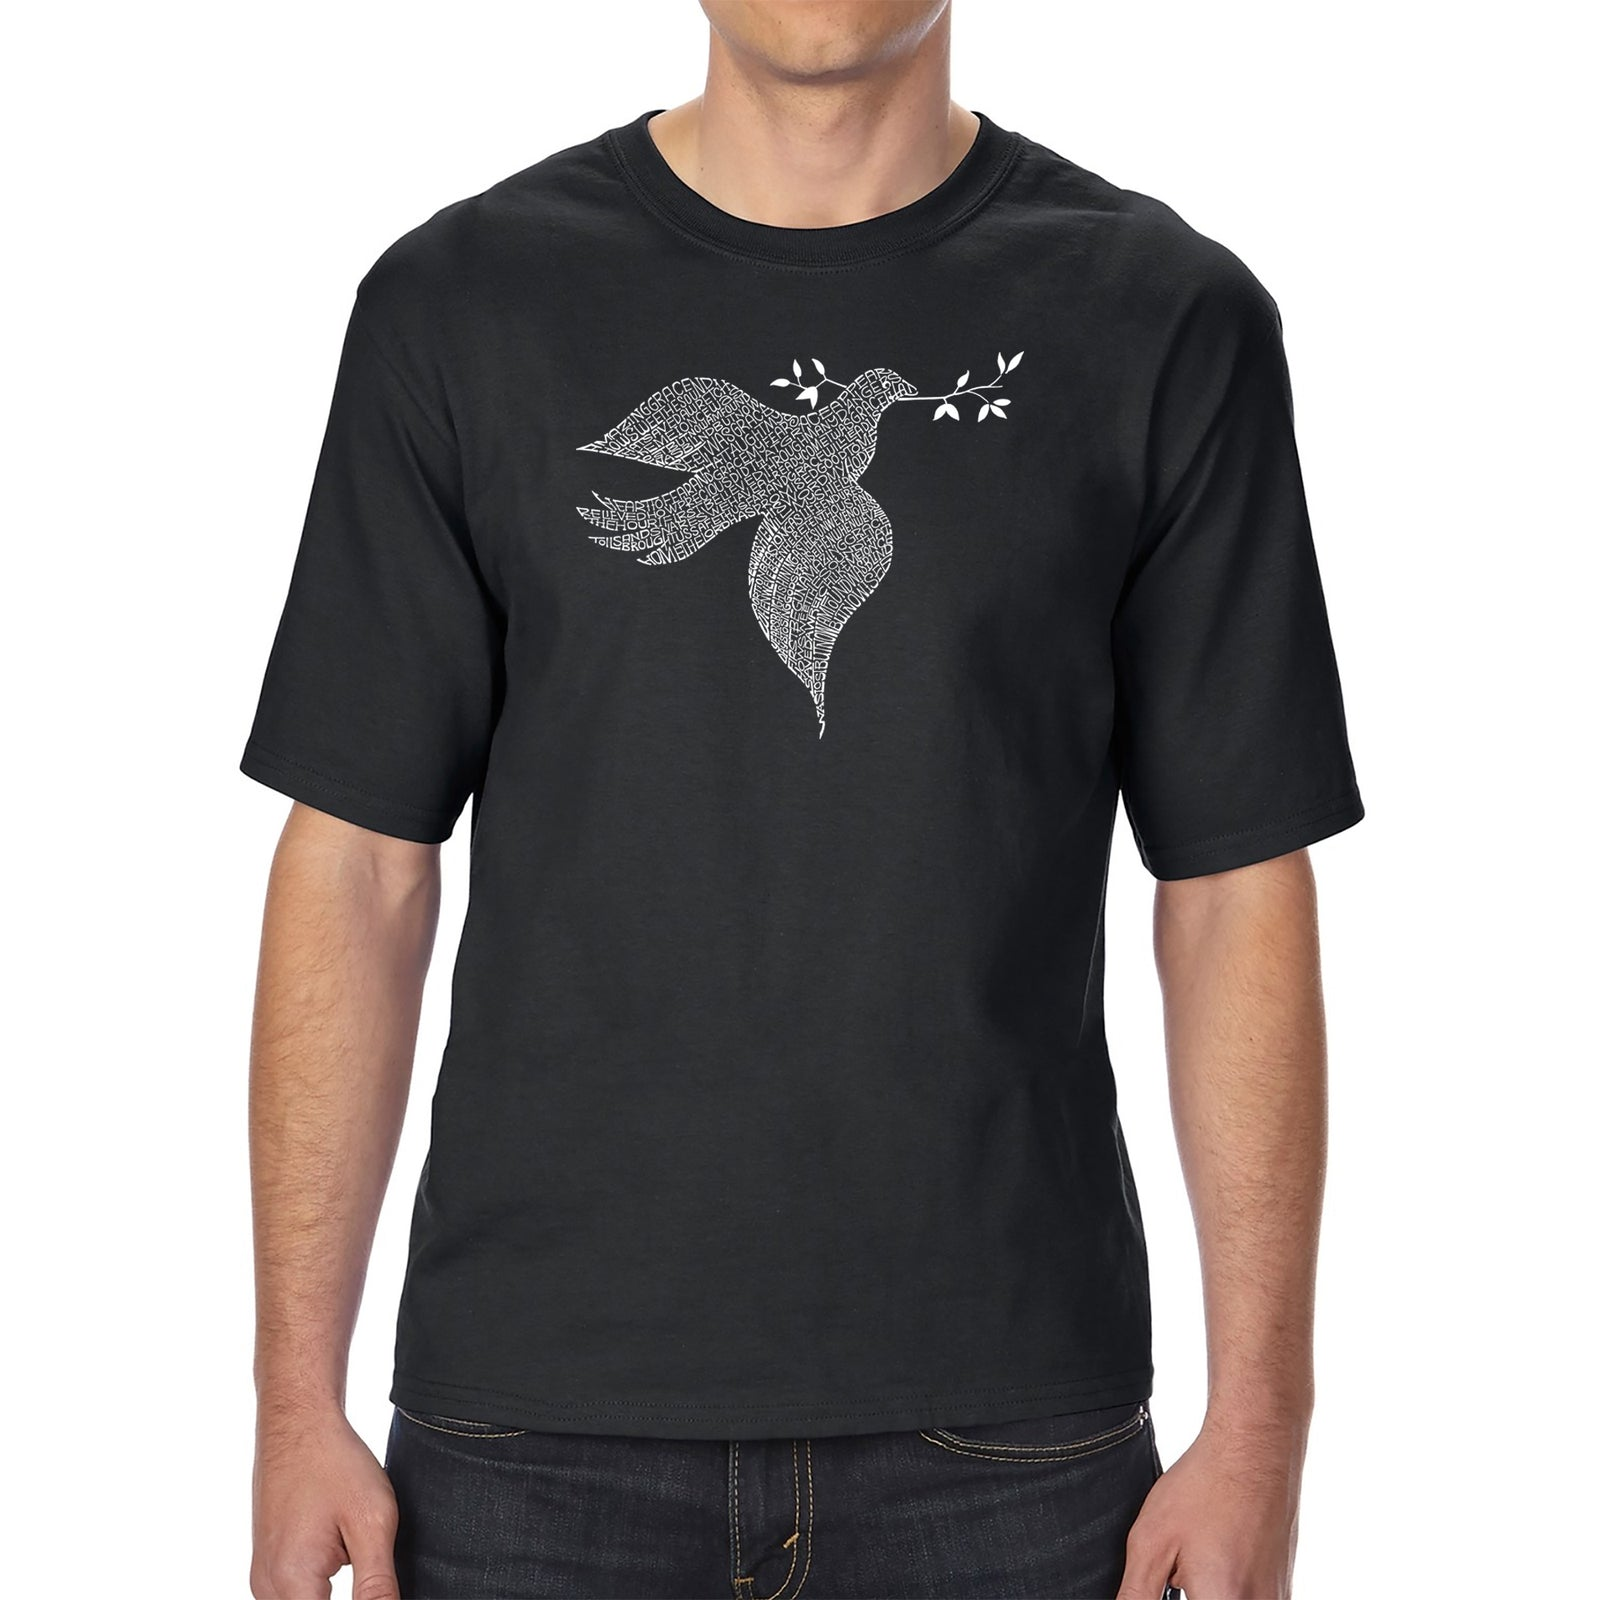 Men's Tall and Long Word Art T-shirt - Dove